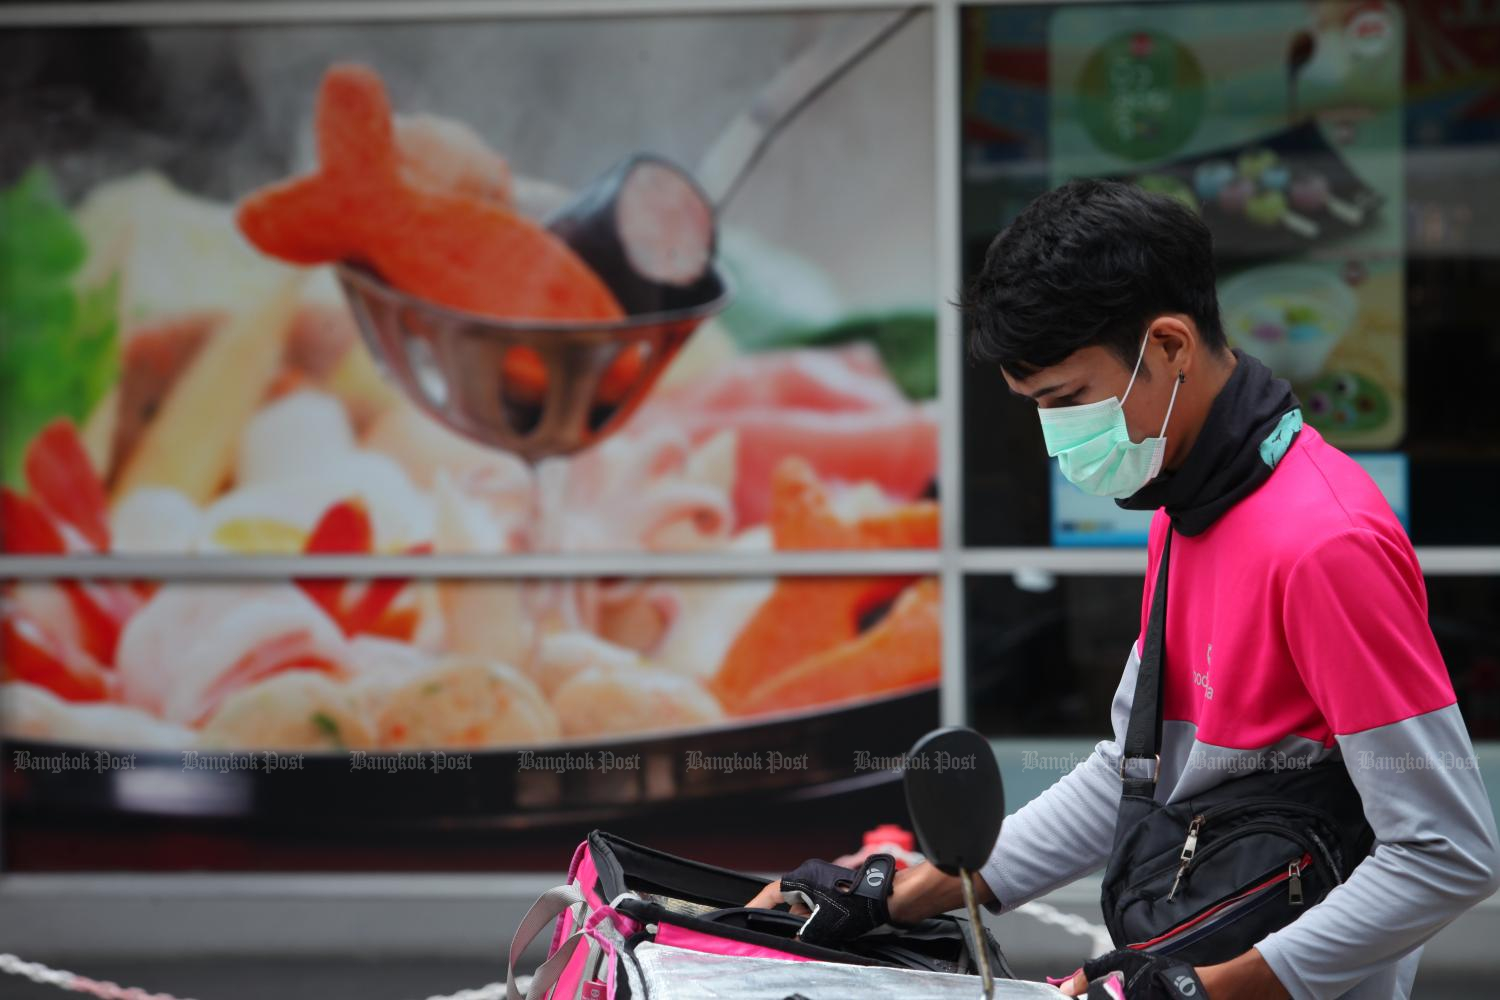 A food delivery rider sets off after receiving an order.Photo by Apichart Jinakul.